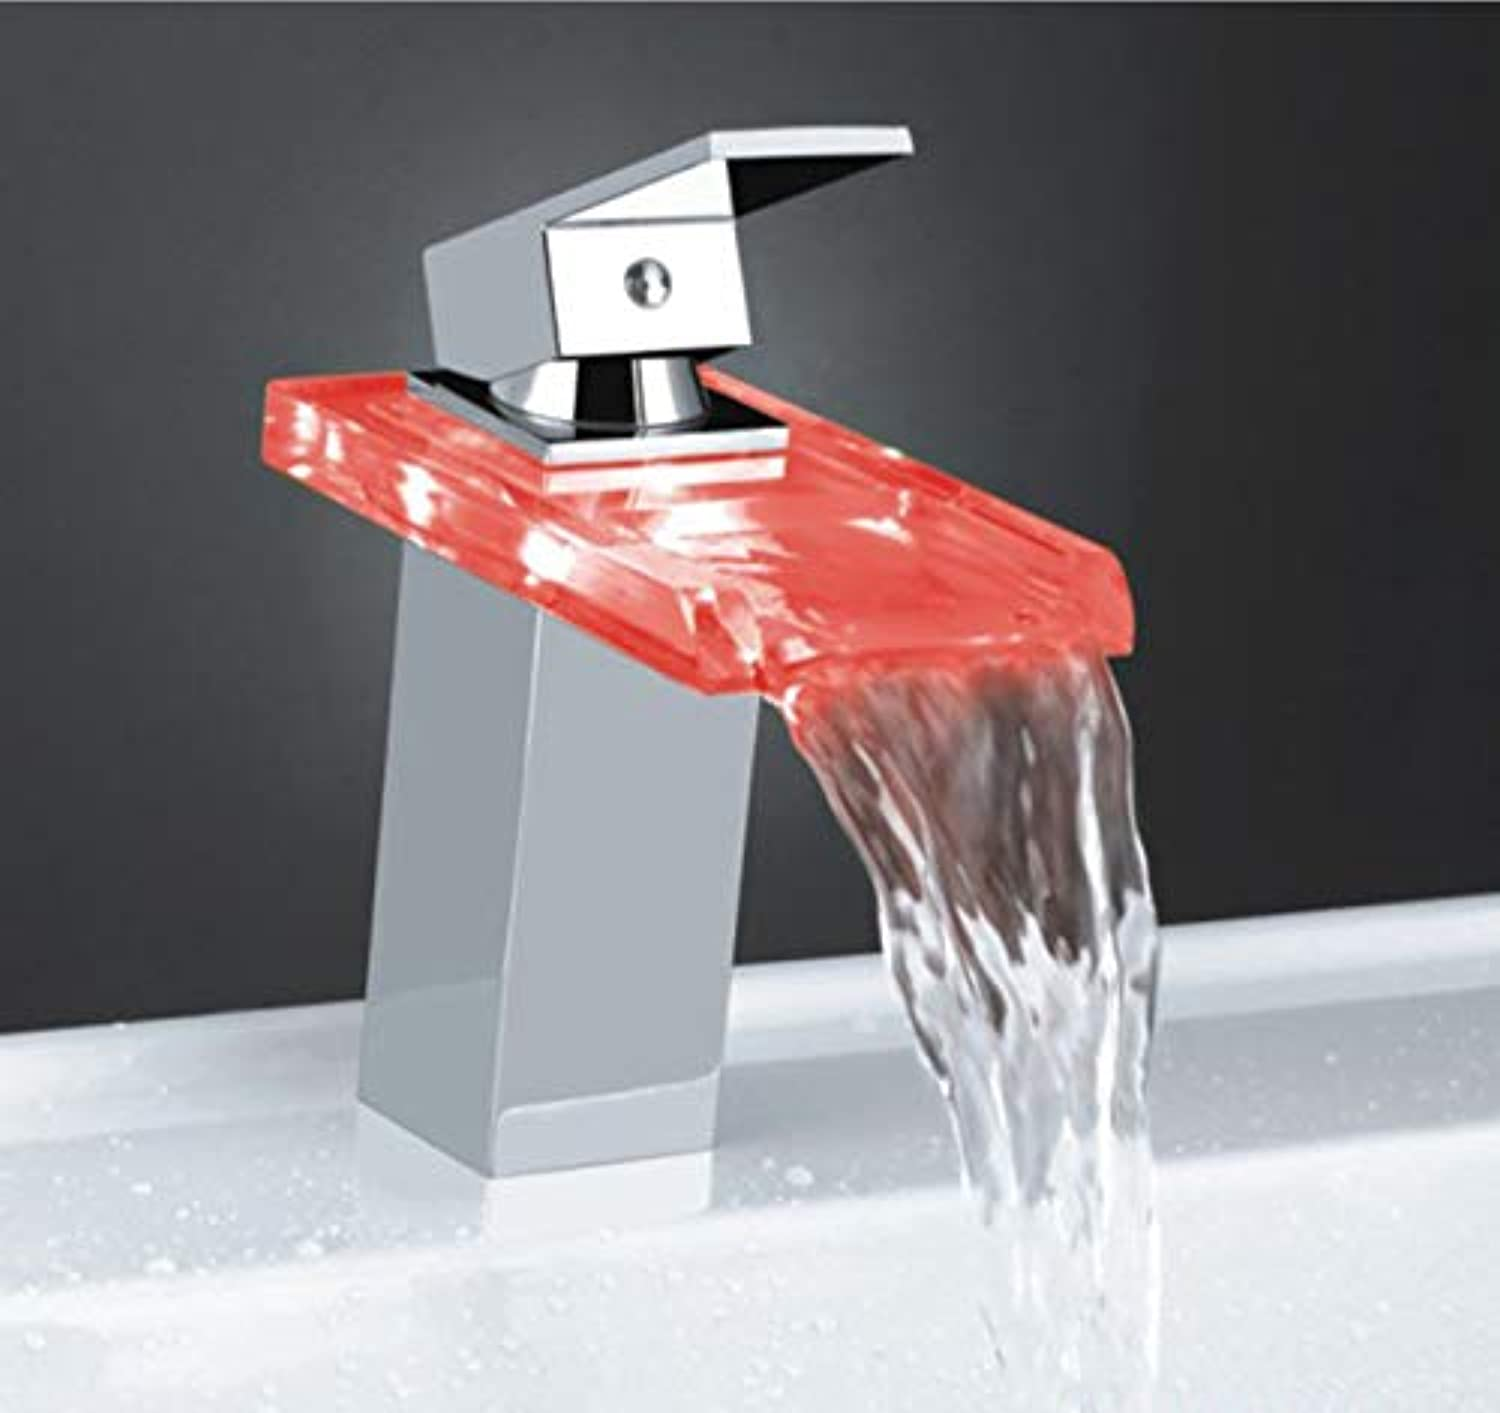 ROKTONG Taps Taps Taps colorful Led Faucet Waterfall Temperature Induction color Faucet Above Counter Basin Faucet